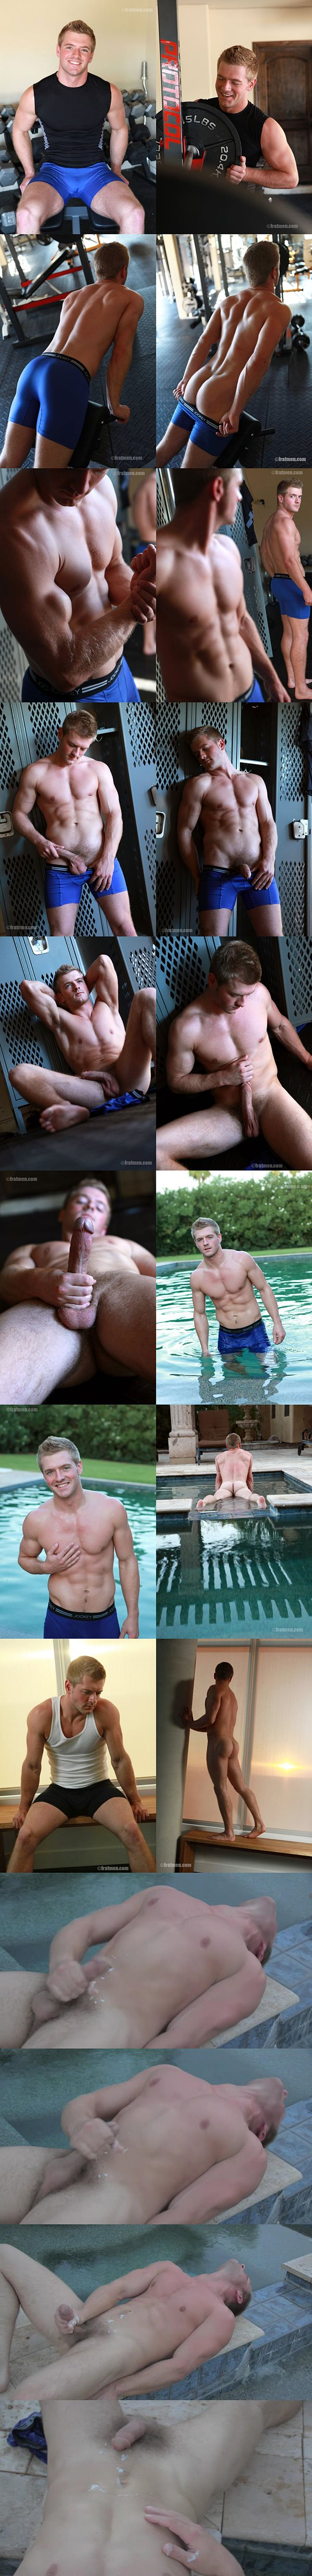 Handsome straight muscle jock Cason (aka Sean Holmes at Gayhoopla) shows off his naked muscle body and shoots a sticky load by the pool at Fratmen